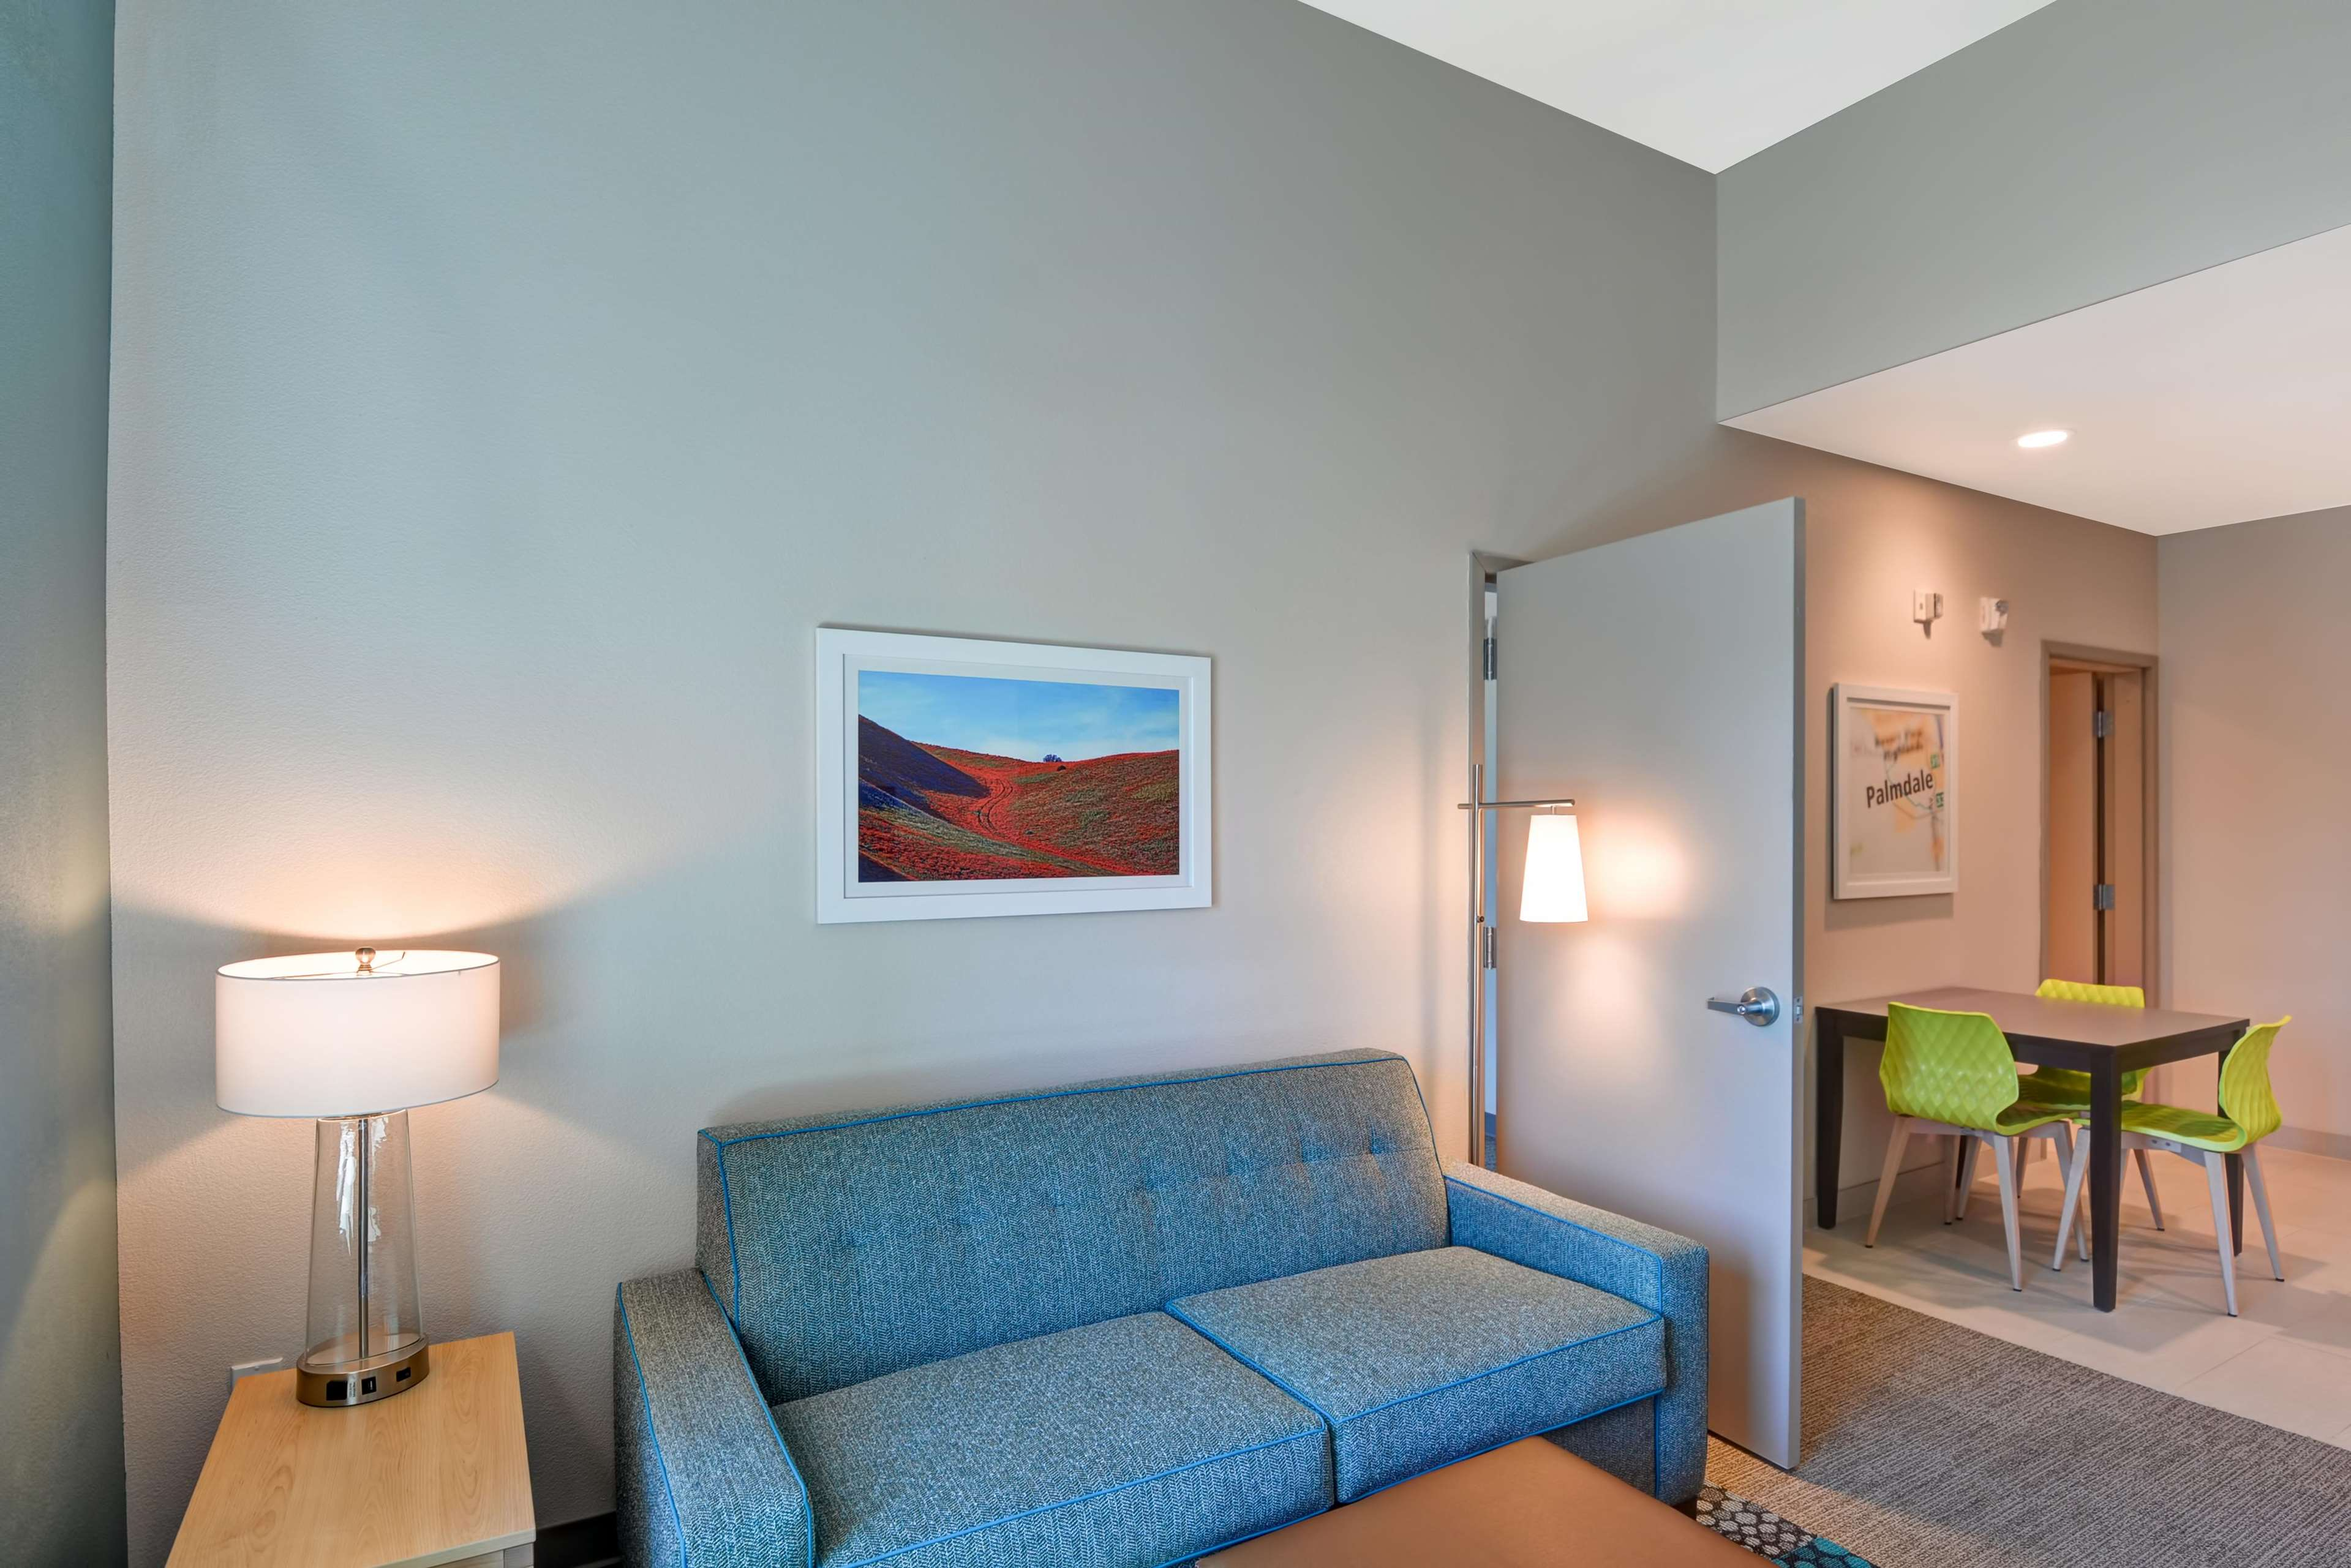 Home2 Suites by Hilton Palmdale image 11